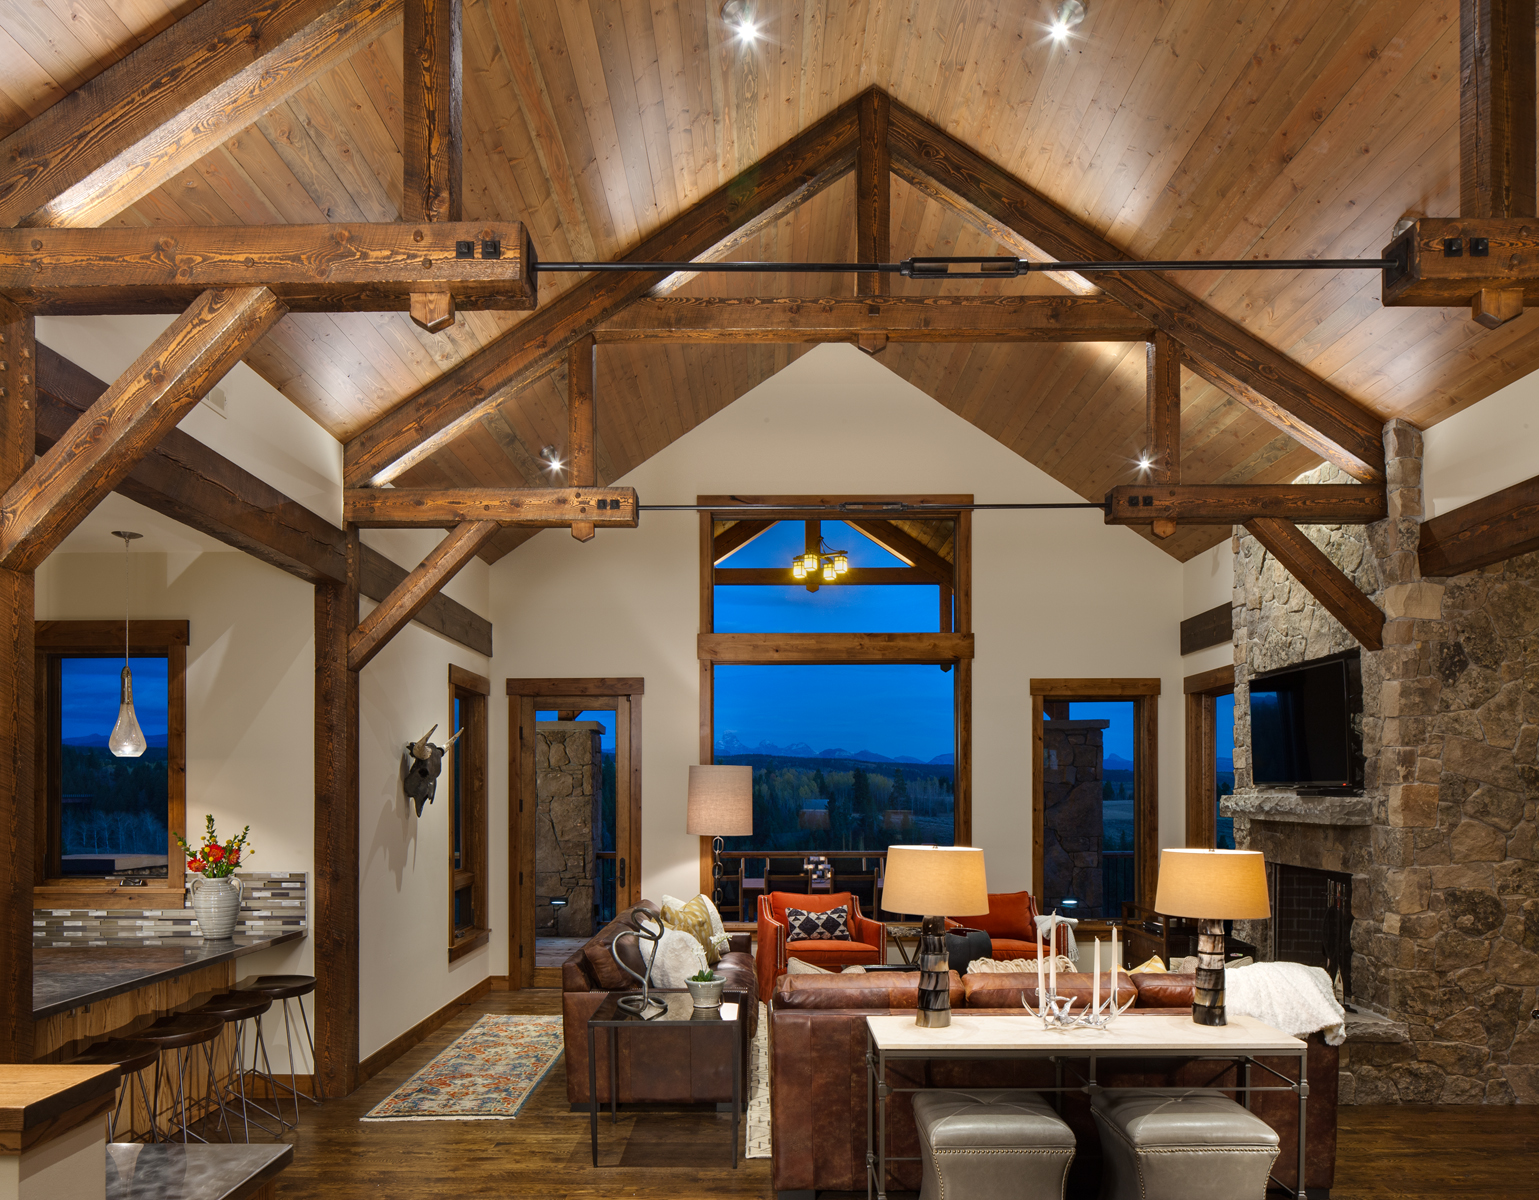 Interior view of living room at dusk with distant views of the Tetons. The room has a nice warm feel to it which reveals the natural tones of the wood floors and beams through out. The kitchen bar top can be seen on the left while the stone fire place is on the right. The home has high vaulted ceilings.